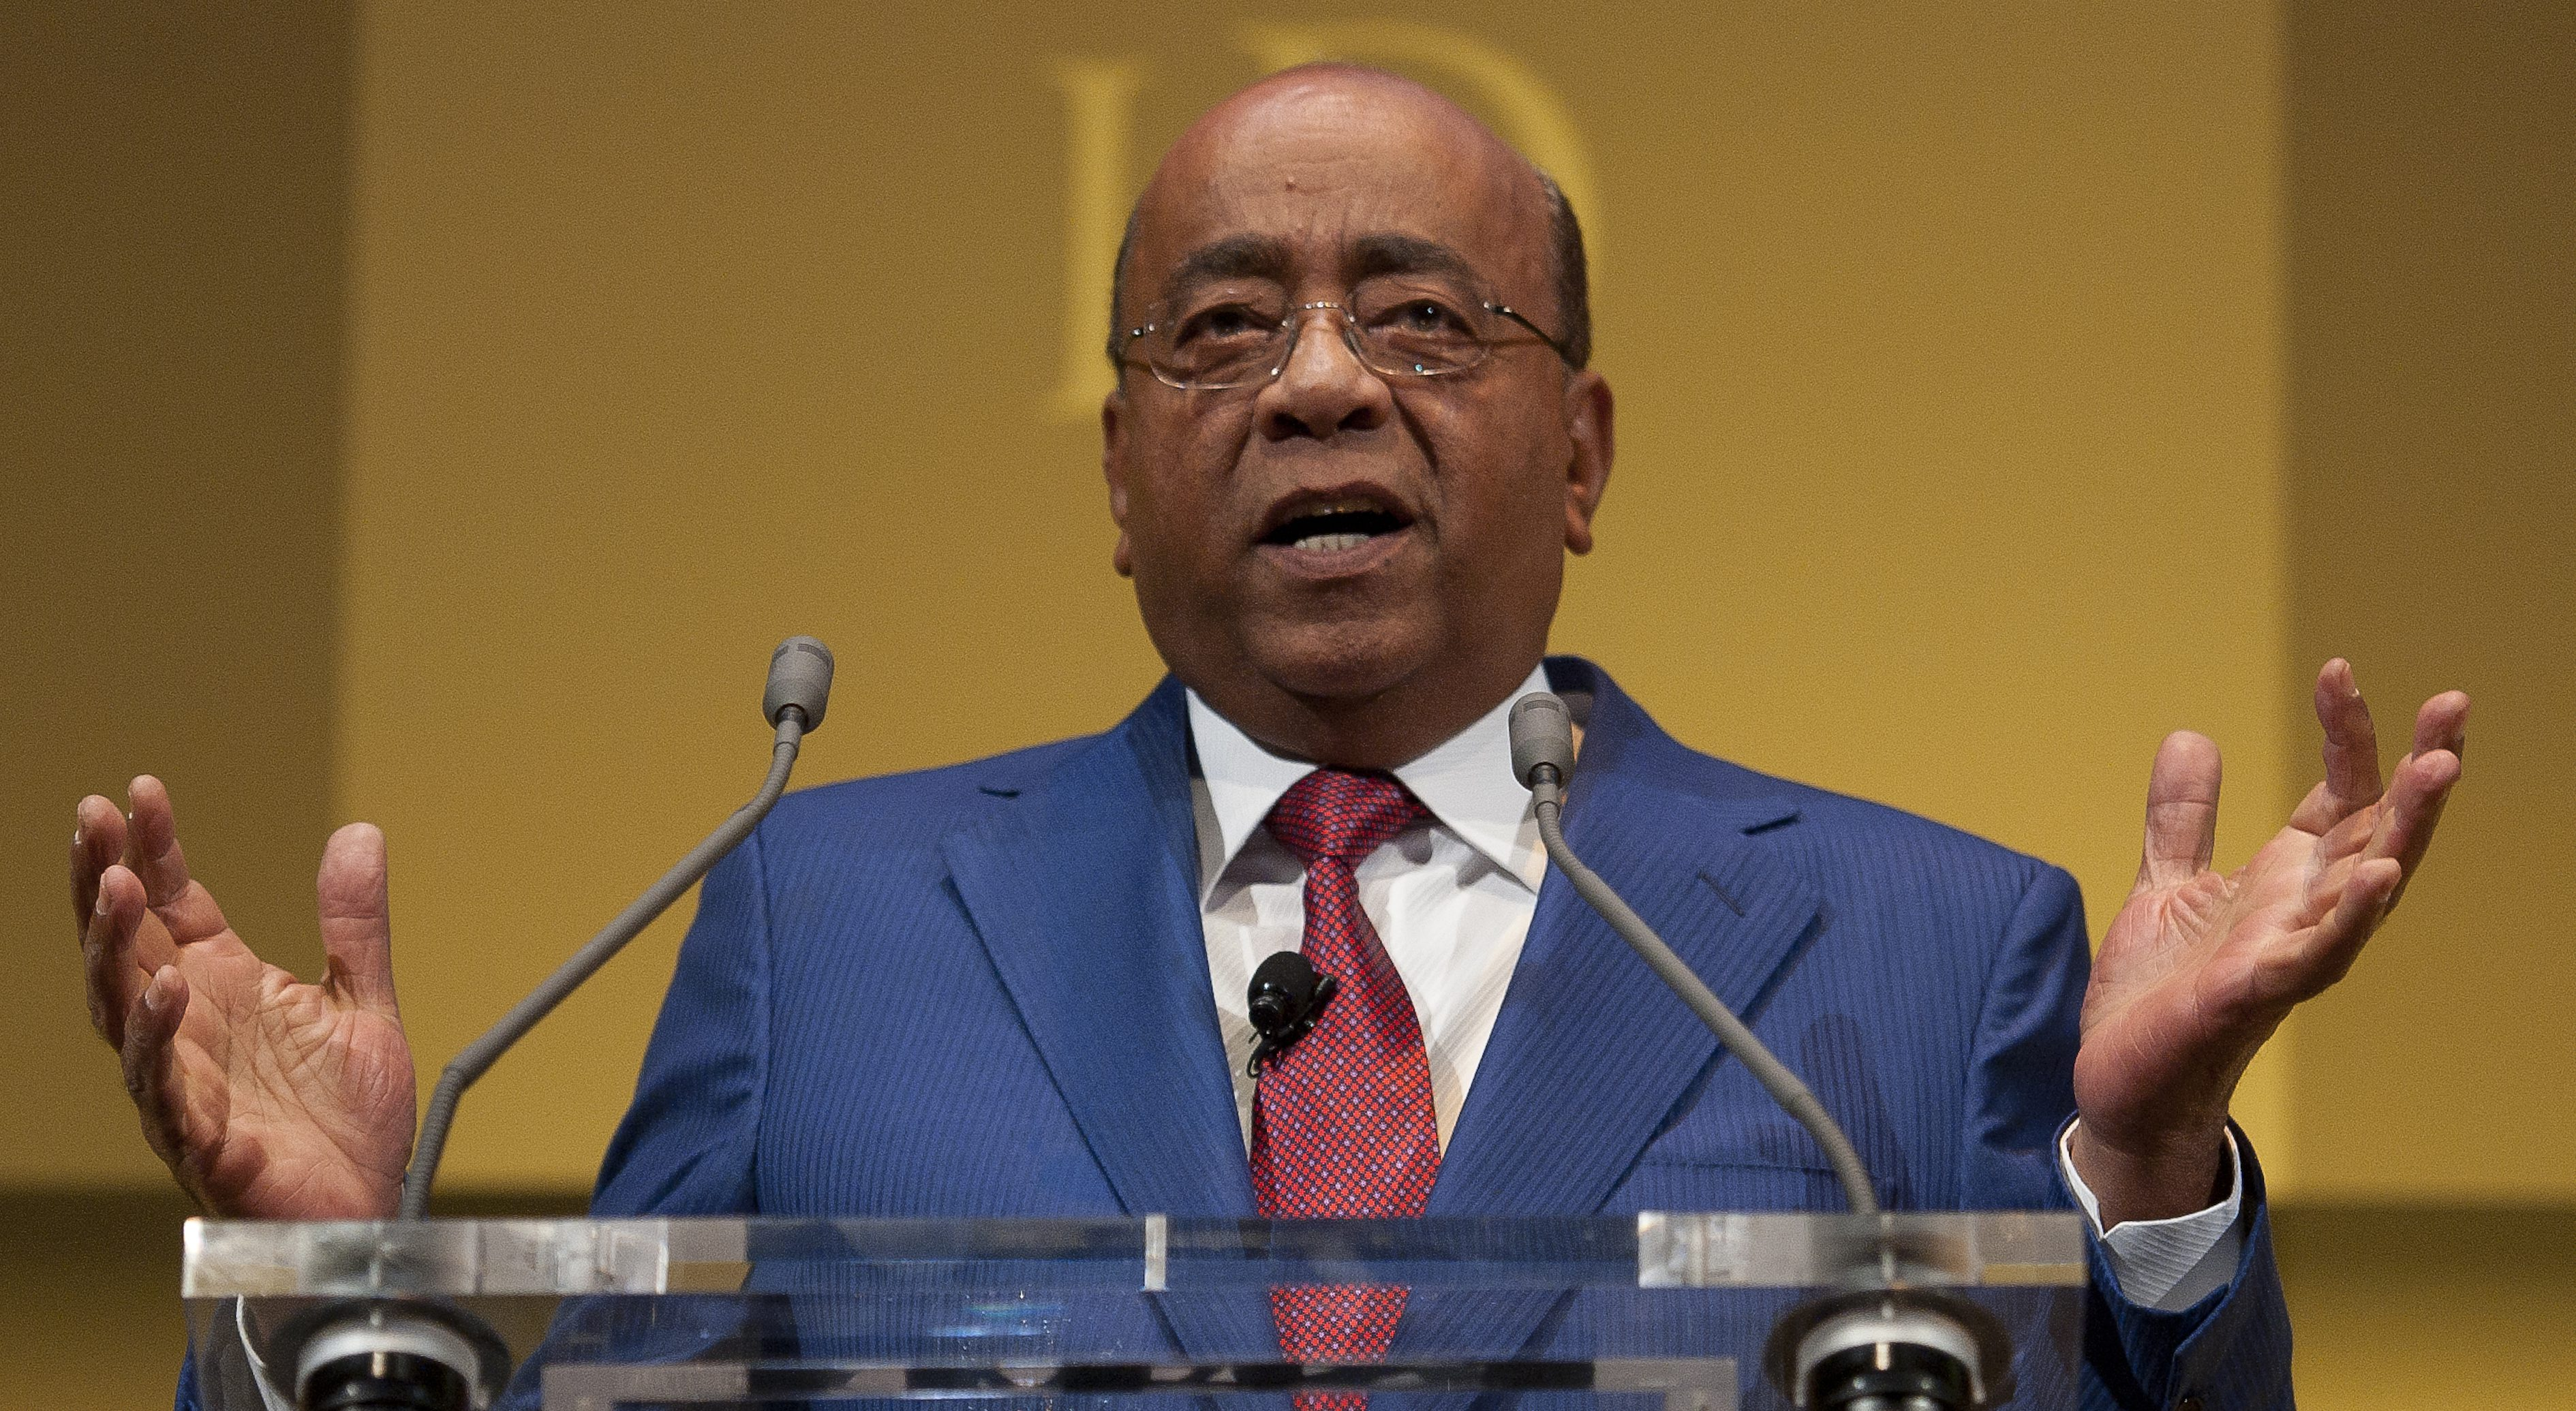 Mo Ibrahim, Founder of Celtel and Satya Capital, delivers a speech at the Institute of Directors Convention at the Royal Albert Hall, Central London, Britain, 03 October 2014. The annual convention brings together business leaders and politicians to discuss the business strategy and the world economy.